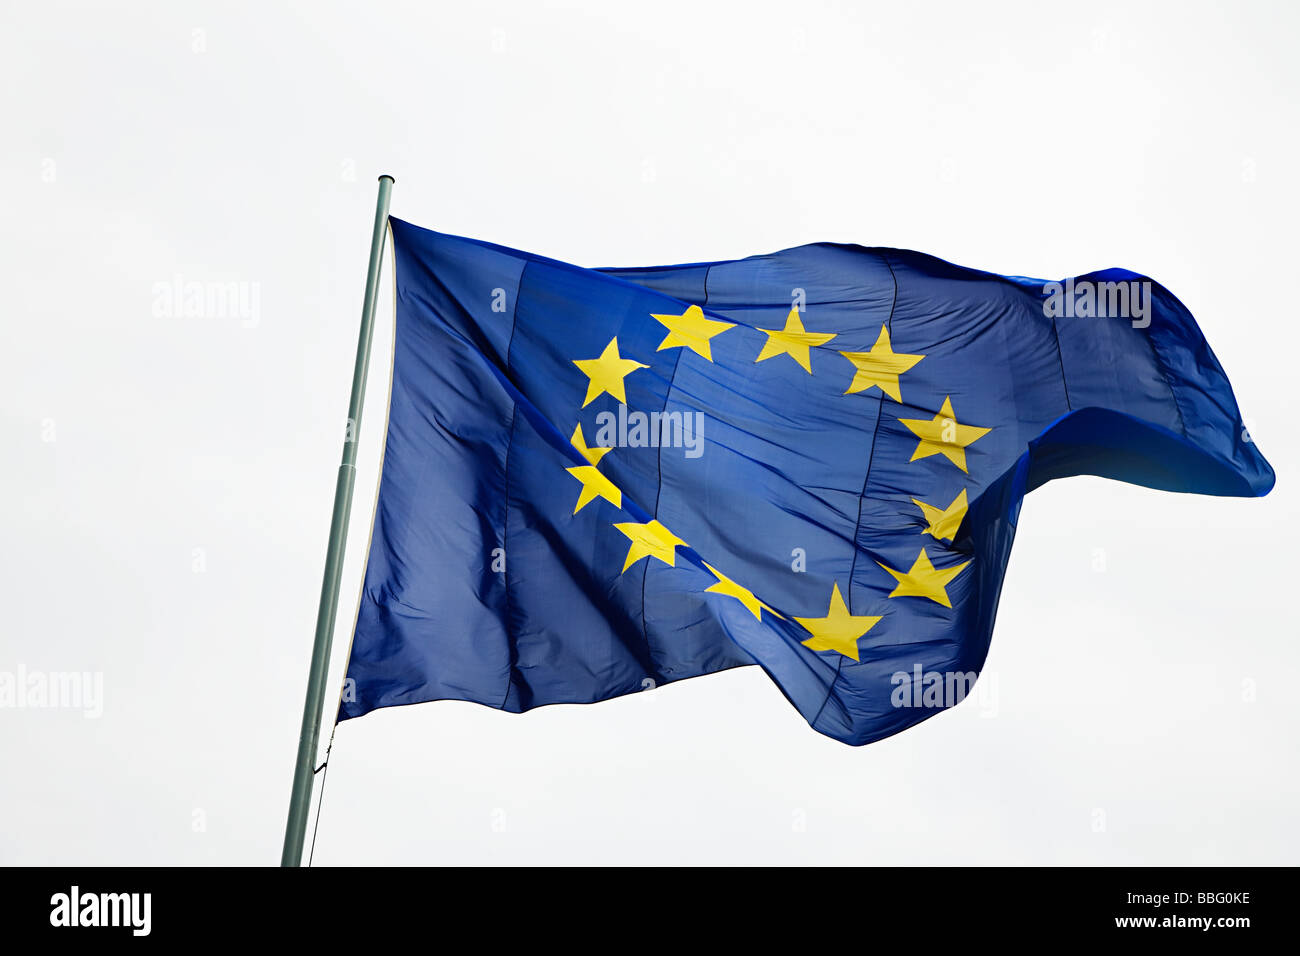 European community flag - Stock Image